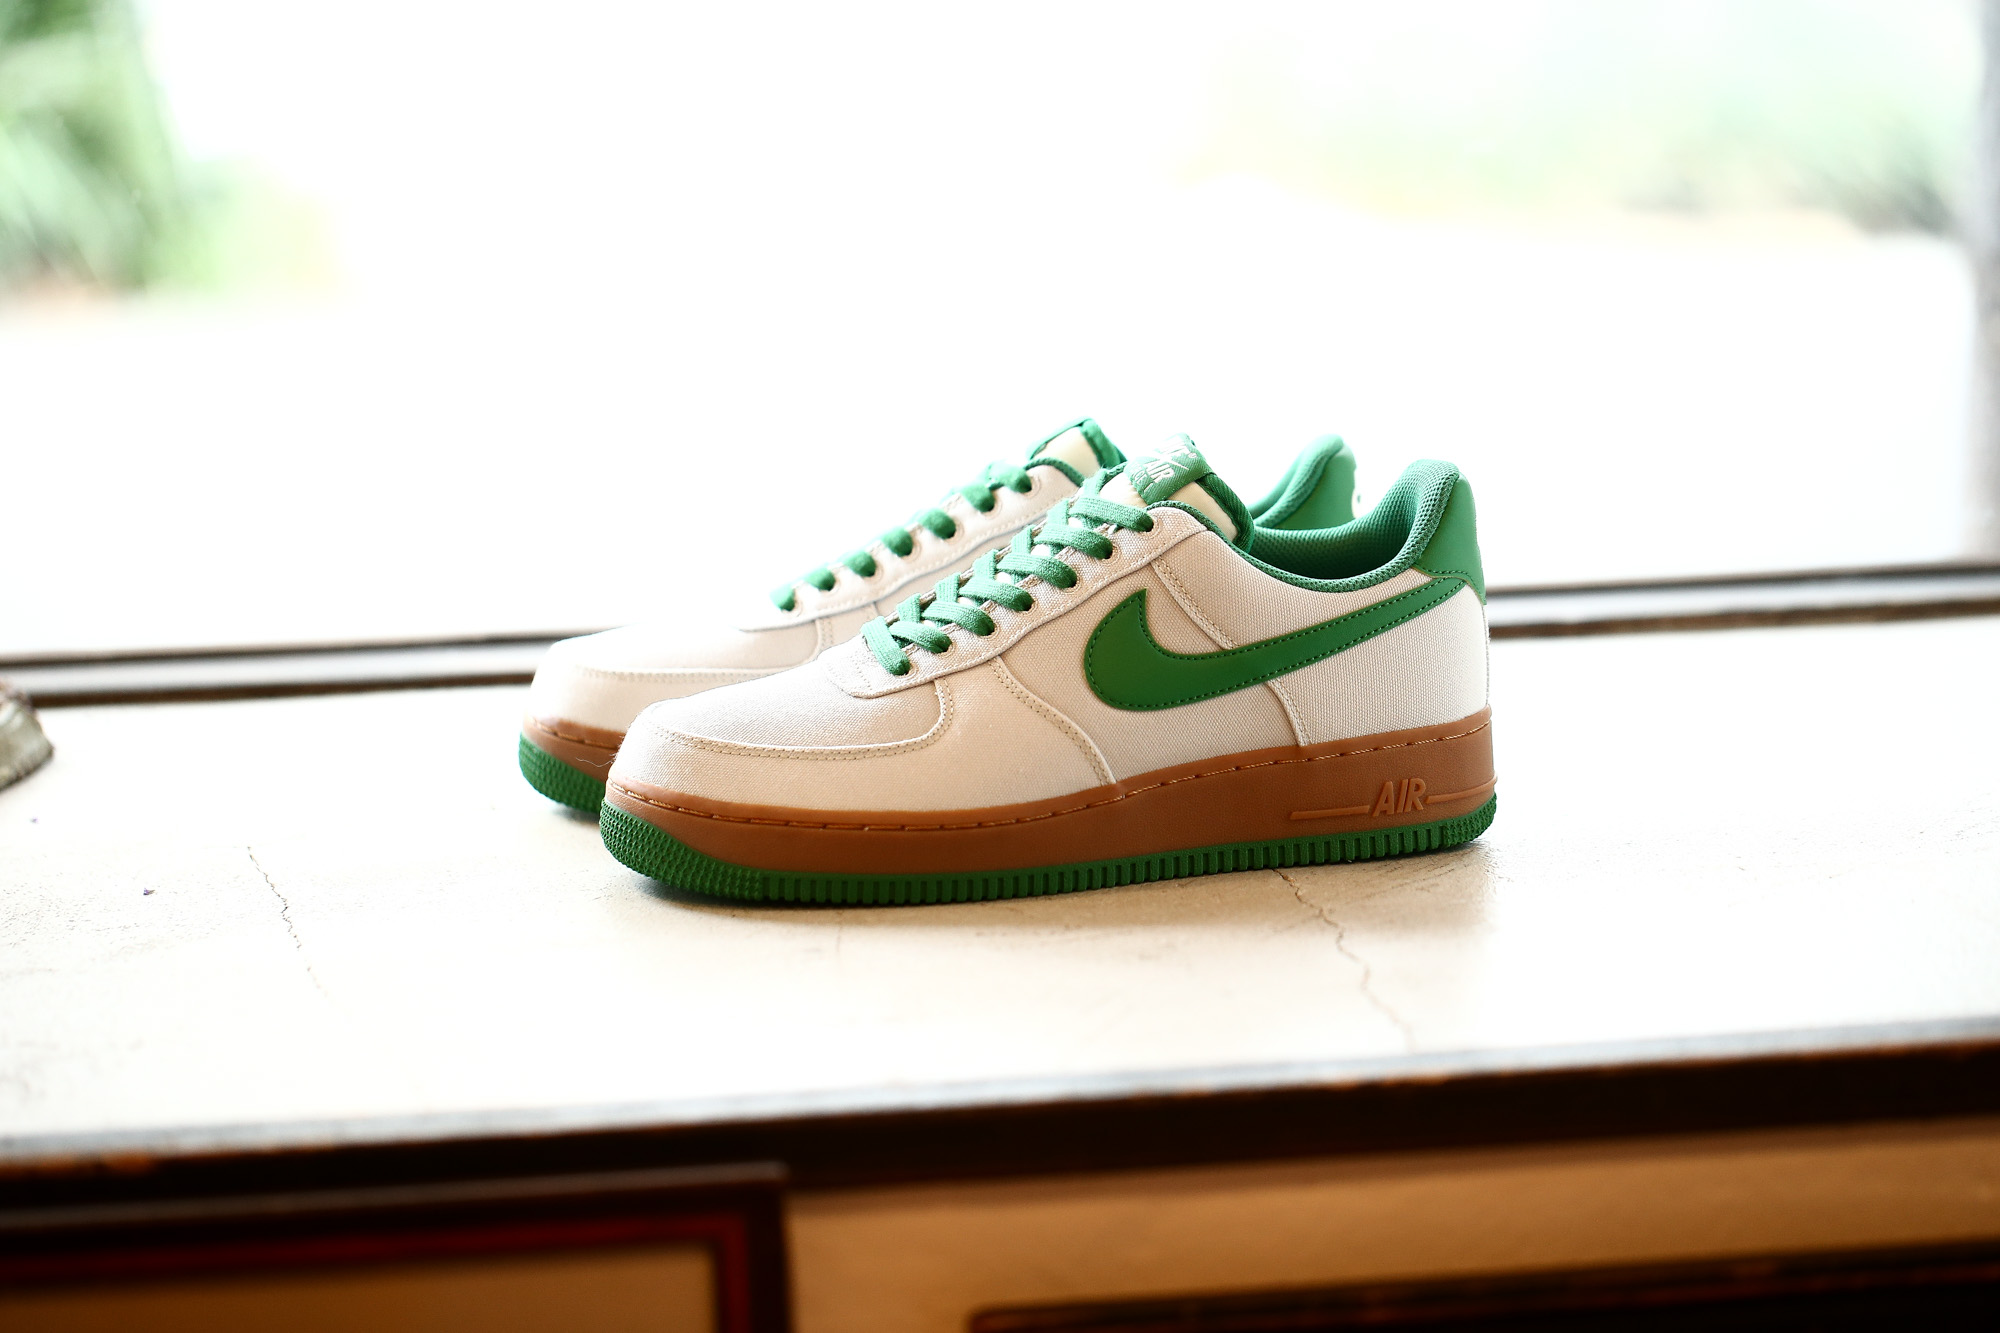 sneakers for cheap d9e95 d332f NIKE (ナイキ) AIR FORCE 1  07 TXT (エアフォース1  07